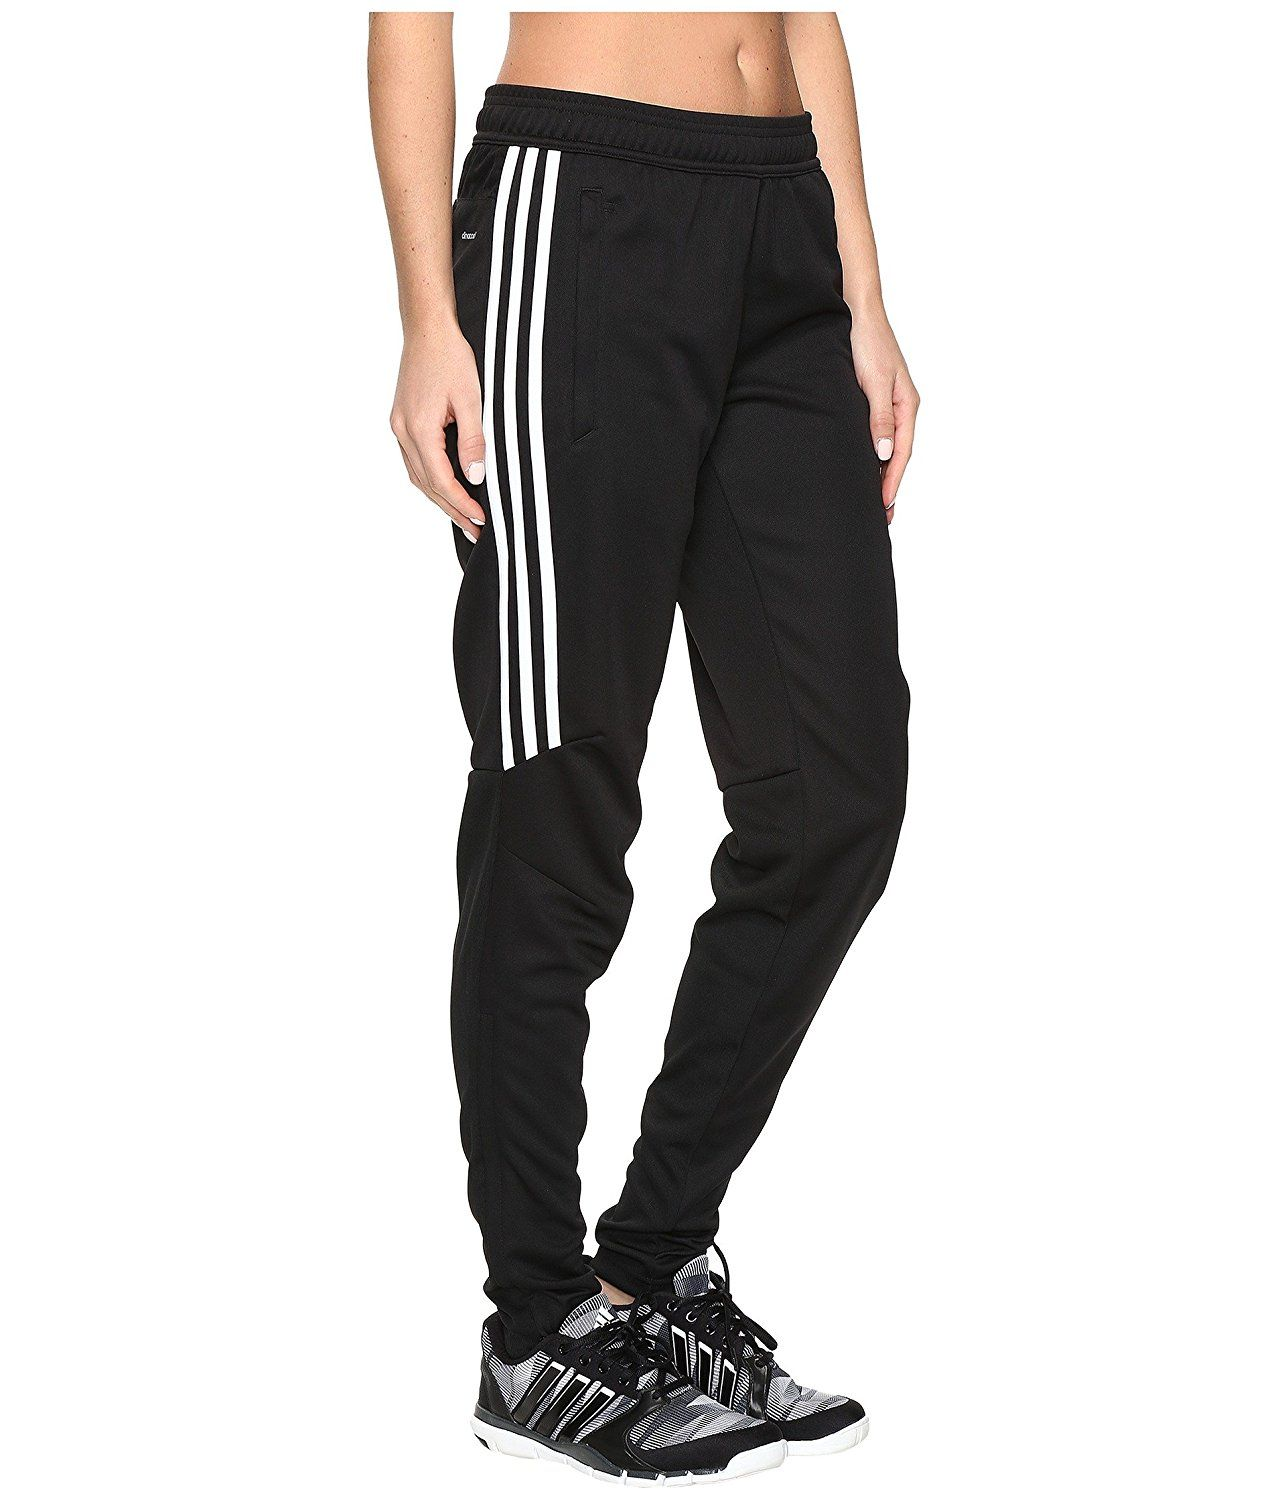 b77f20d9e1394 Amazon.com  adidas Women s Soccer Tiro 17 Training Pants